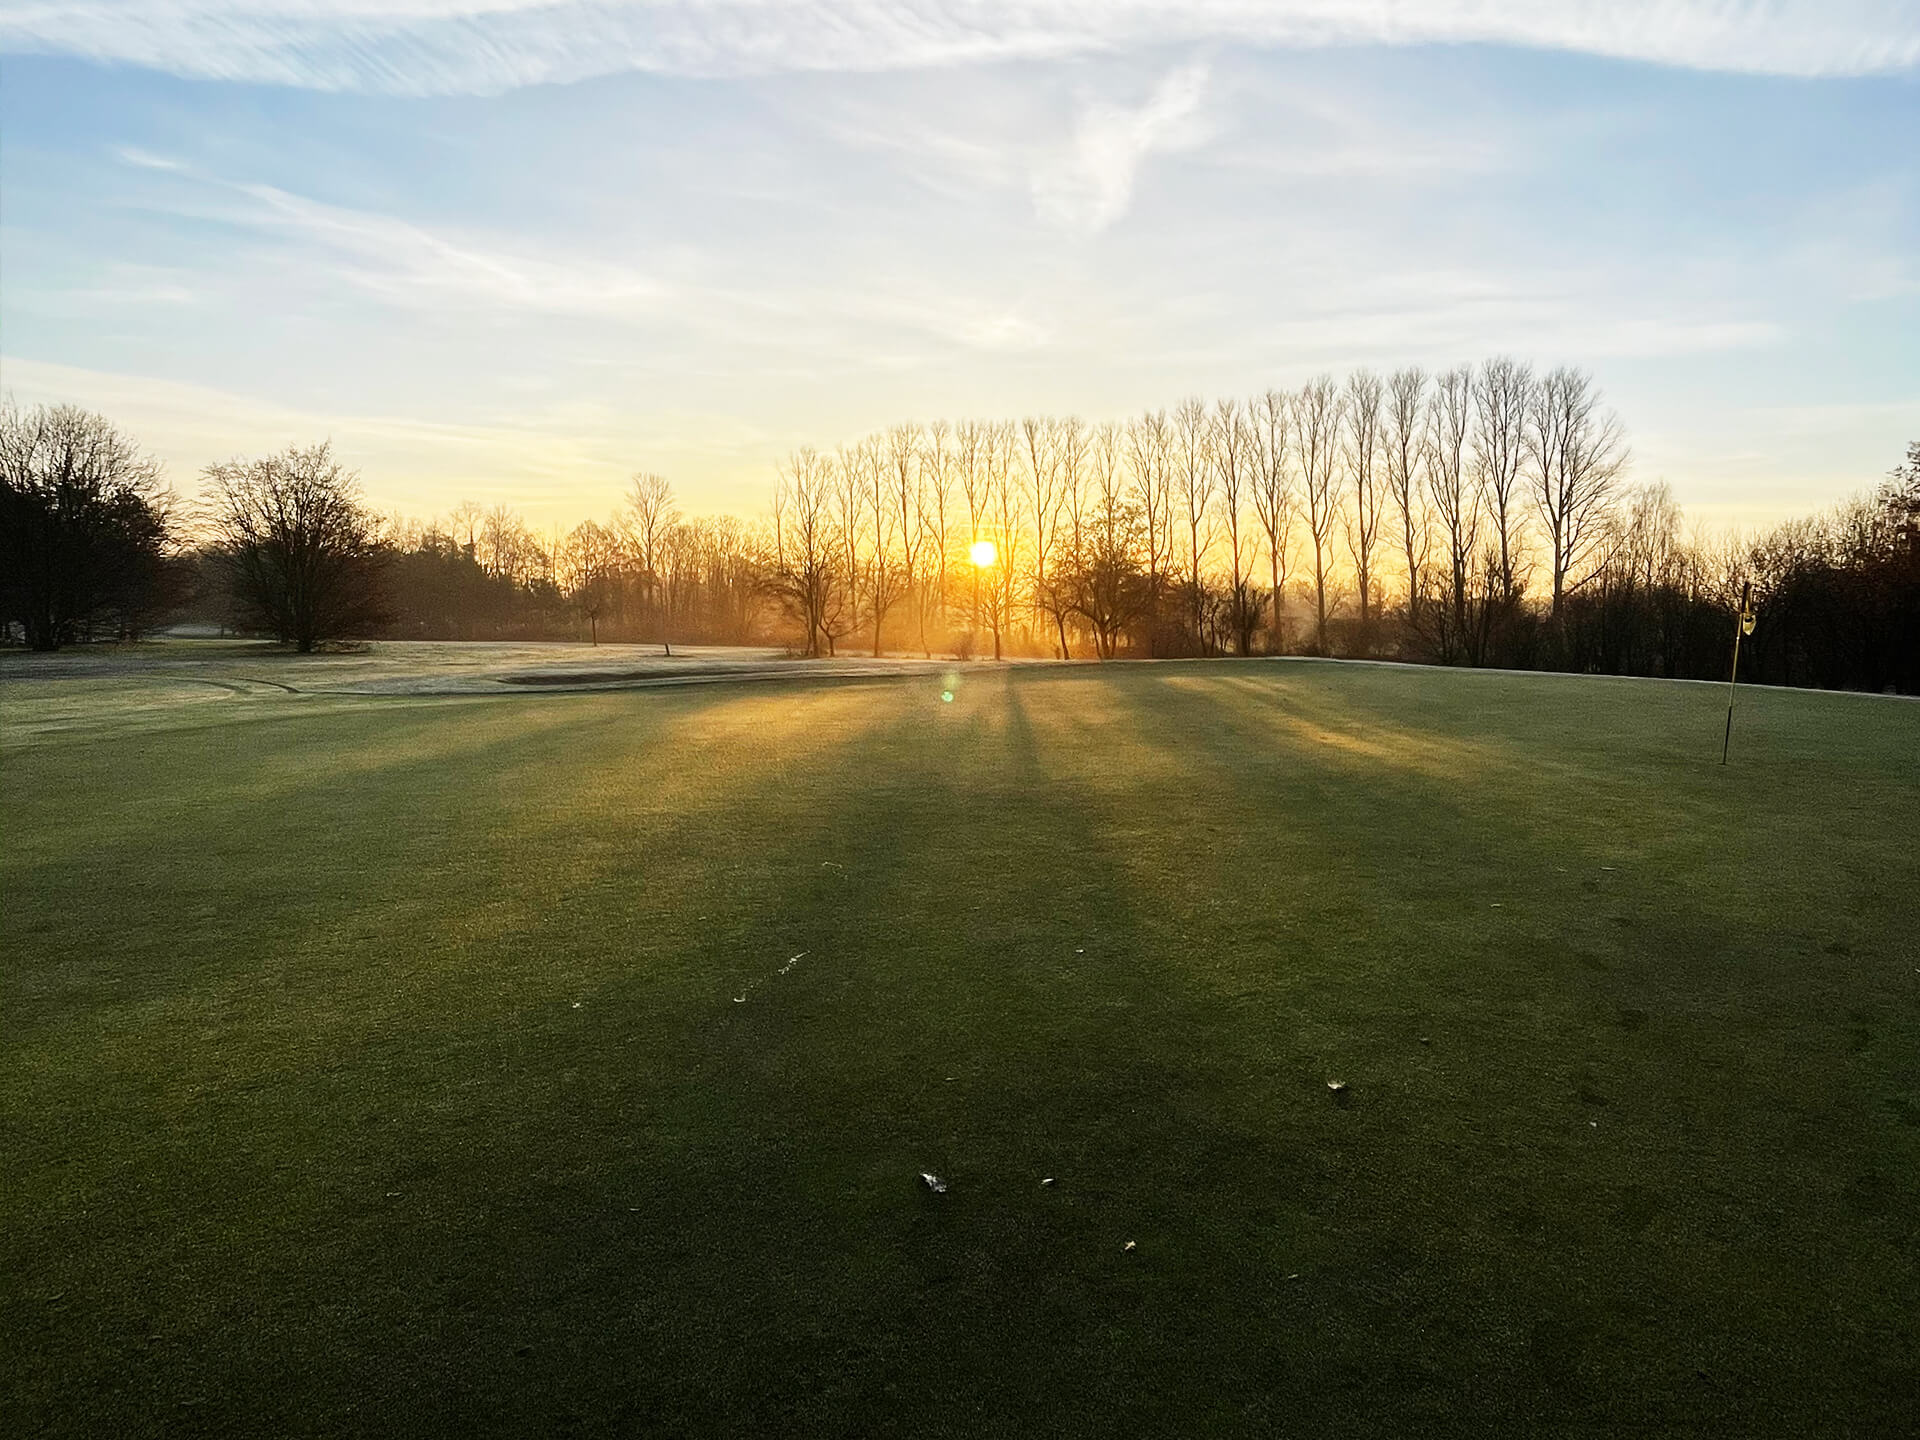 https://golfclub-peckeloh.de/wp-content/uploads/2020/11/Herbst_Winter_Header_2.jpg